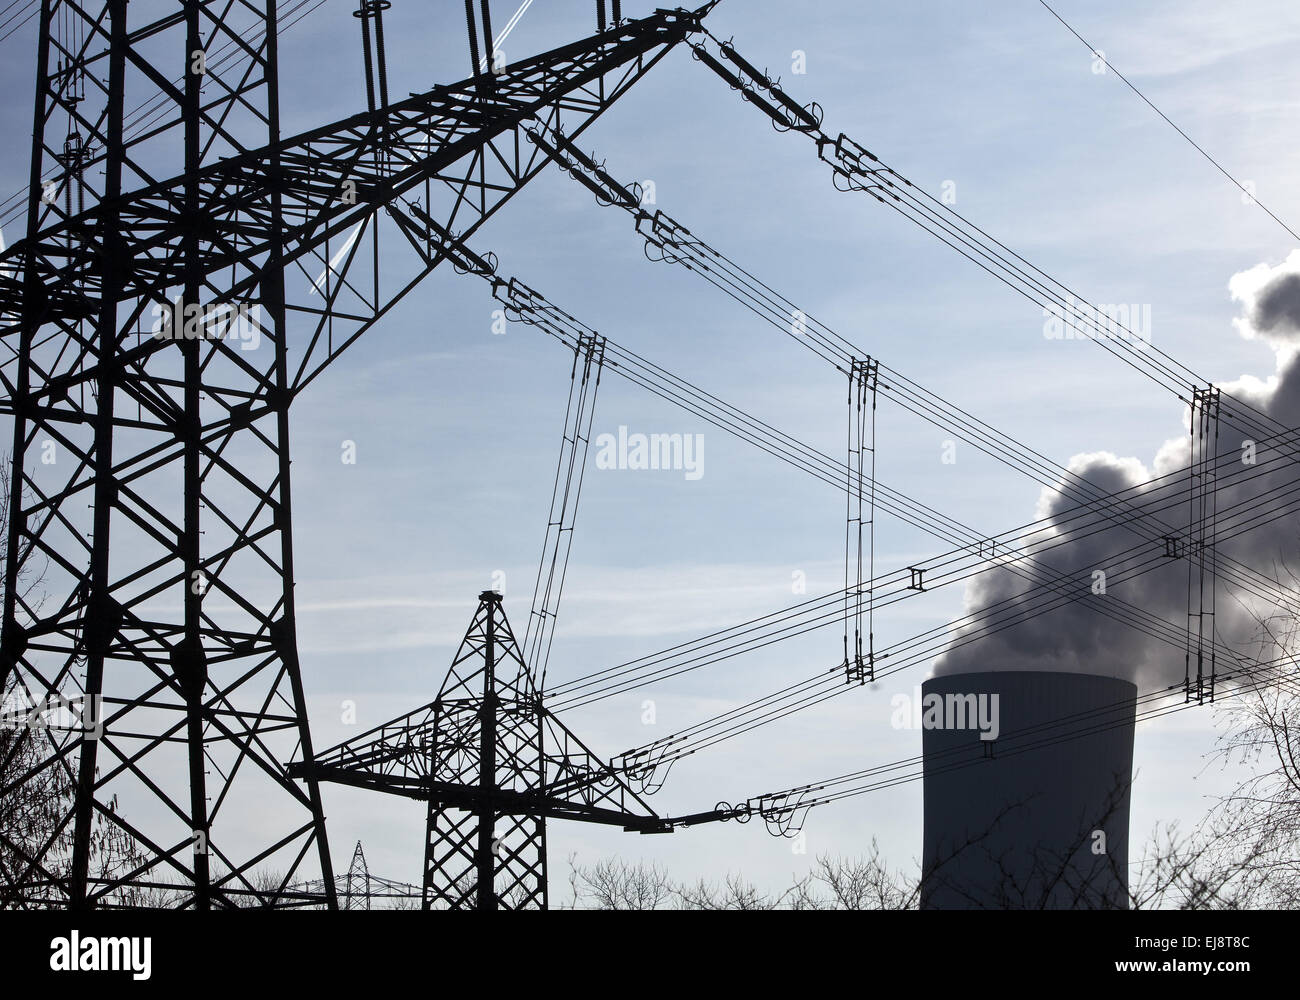 High voltage power pylons with industry - Stock Image